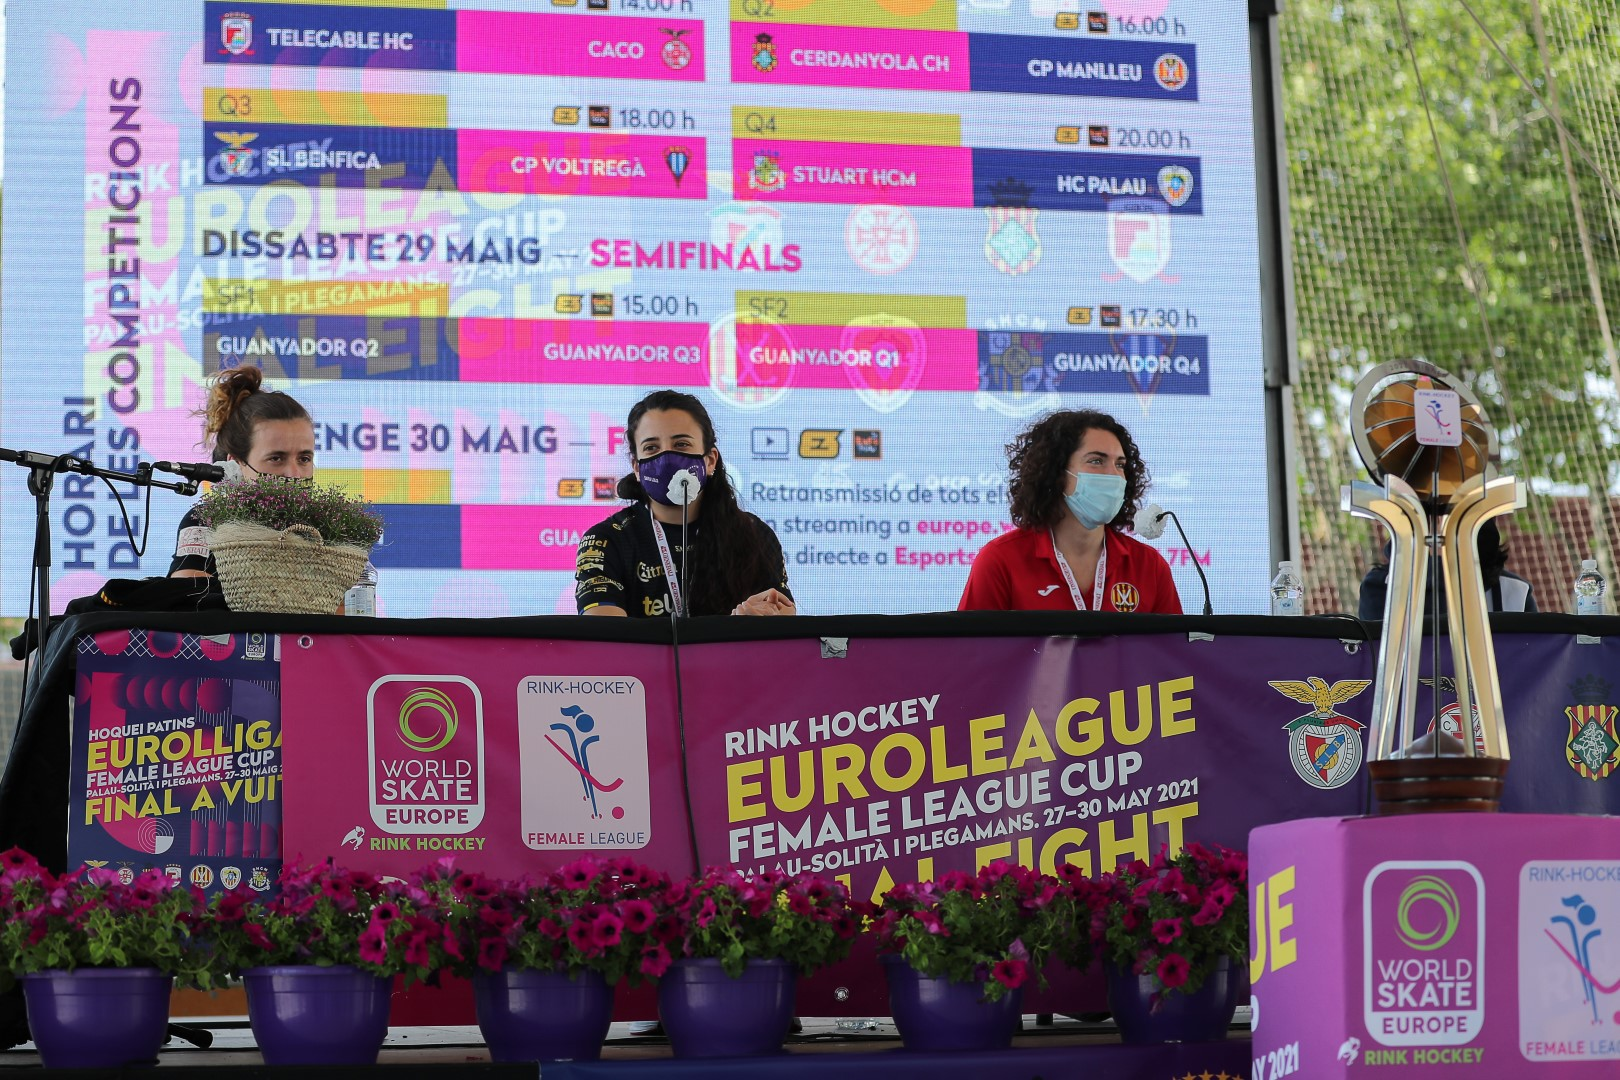 PHOTOS - 28-05-2021 - FEMALE LEAGUE CUP - OPENING CEREMONY